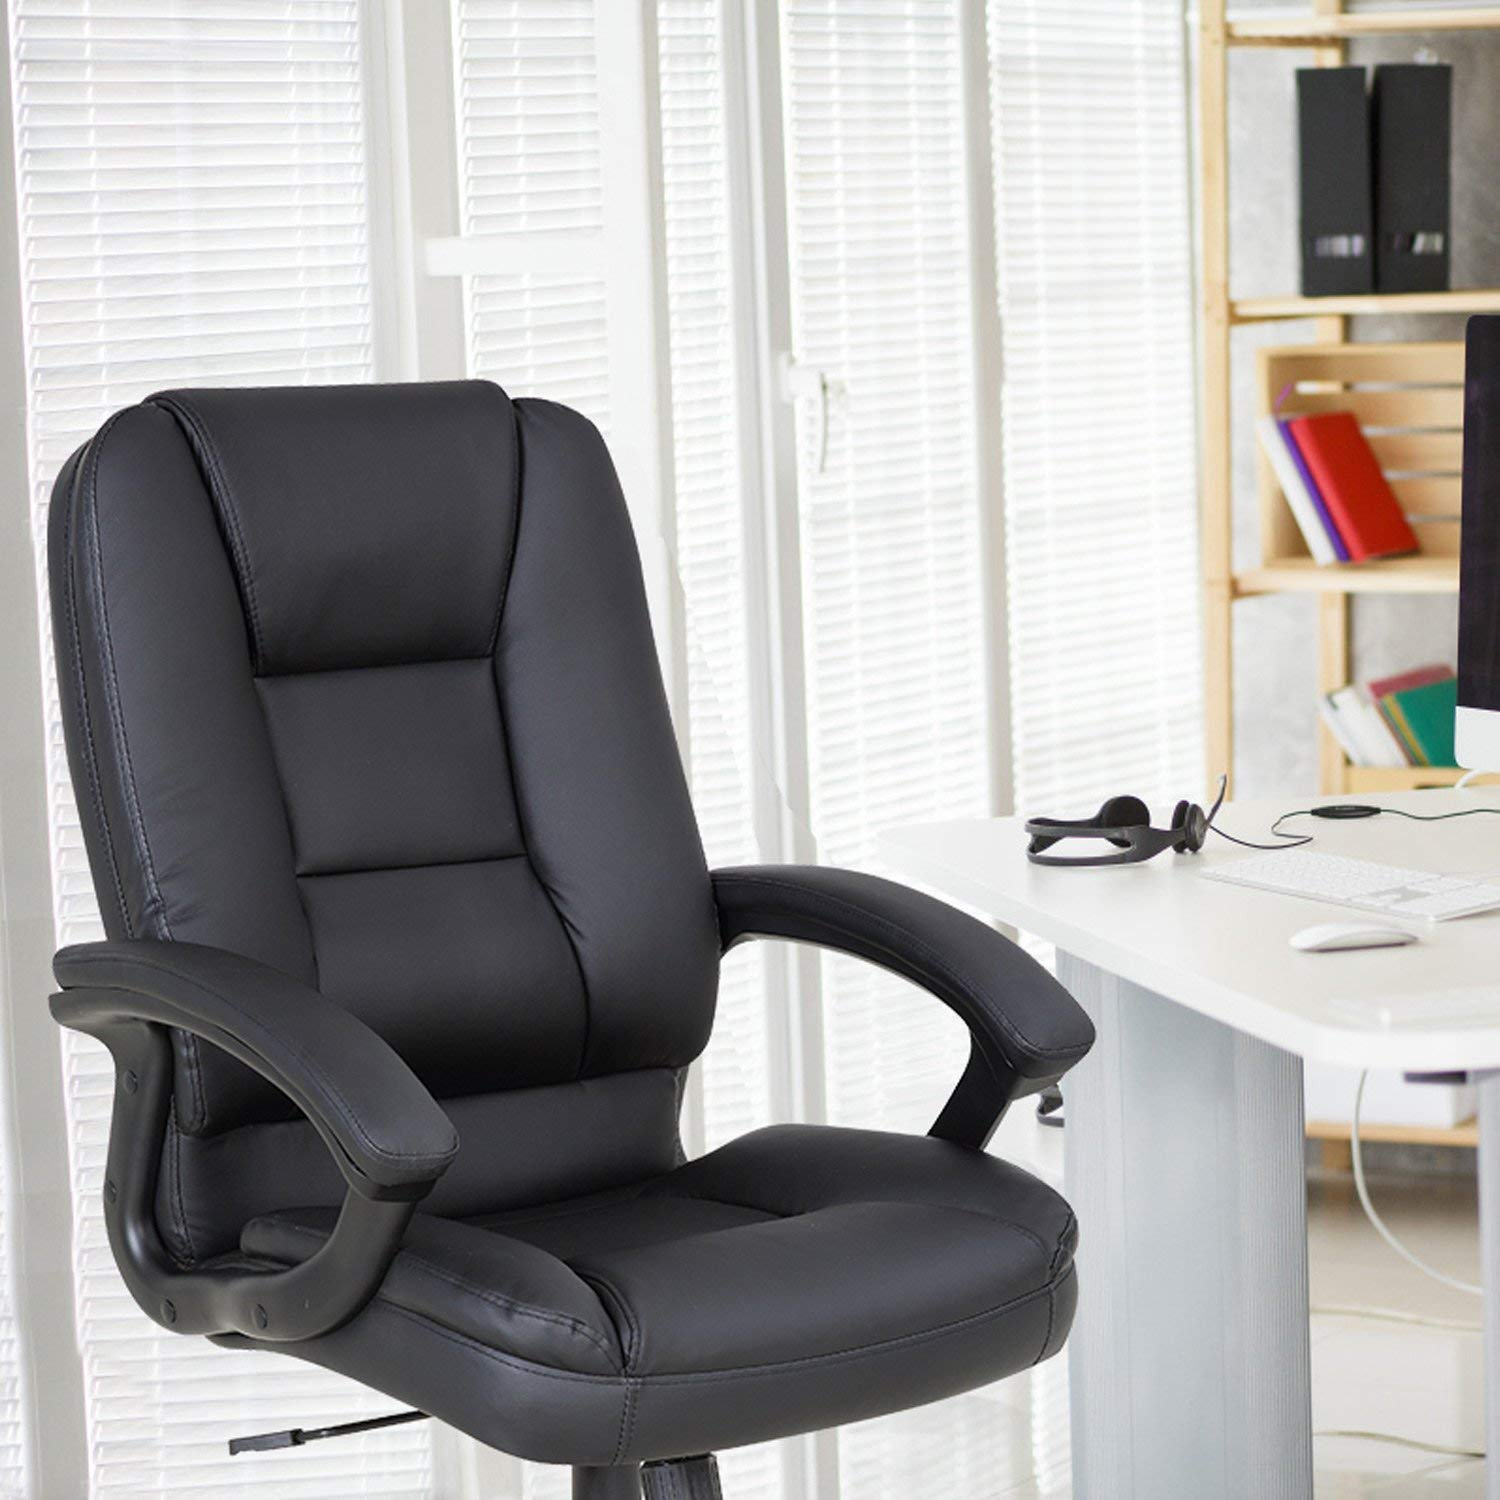 LCH PU Leather Office Chair Swivel Executive Chair with Tilt Function and Thick Seat, Ergonomic Computer Chair Headrest and Lumbar Support (Black) by LCH (Image #9)